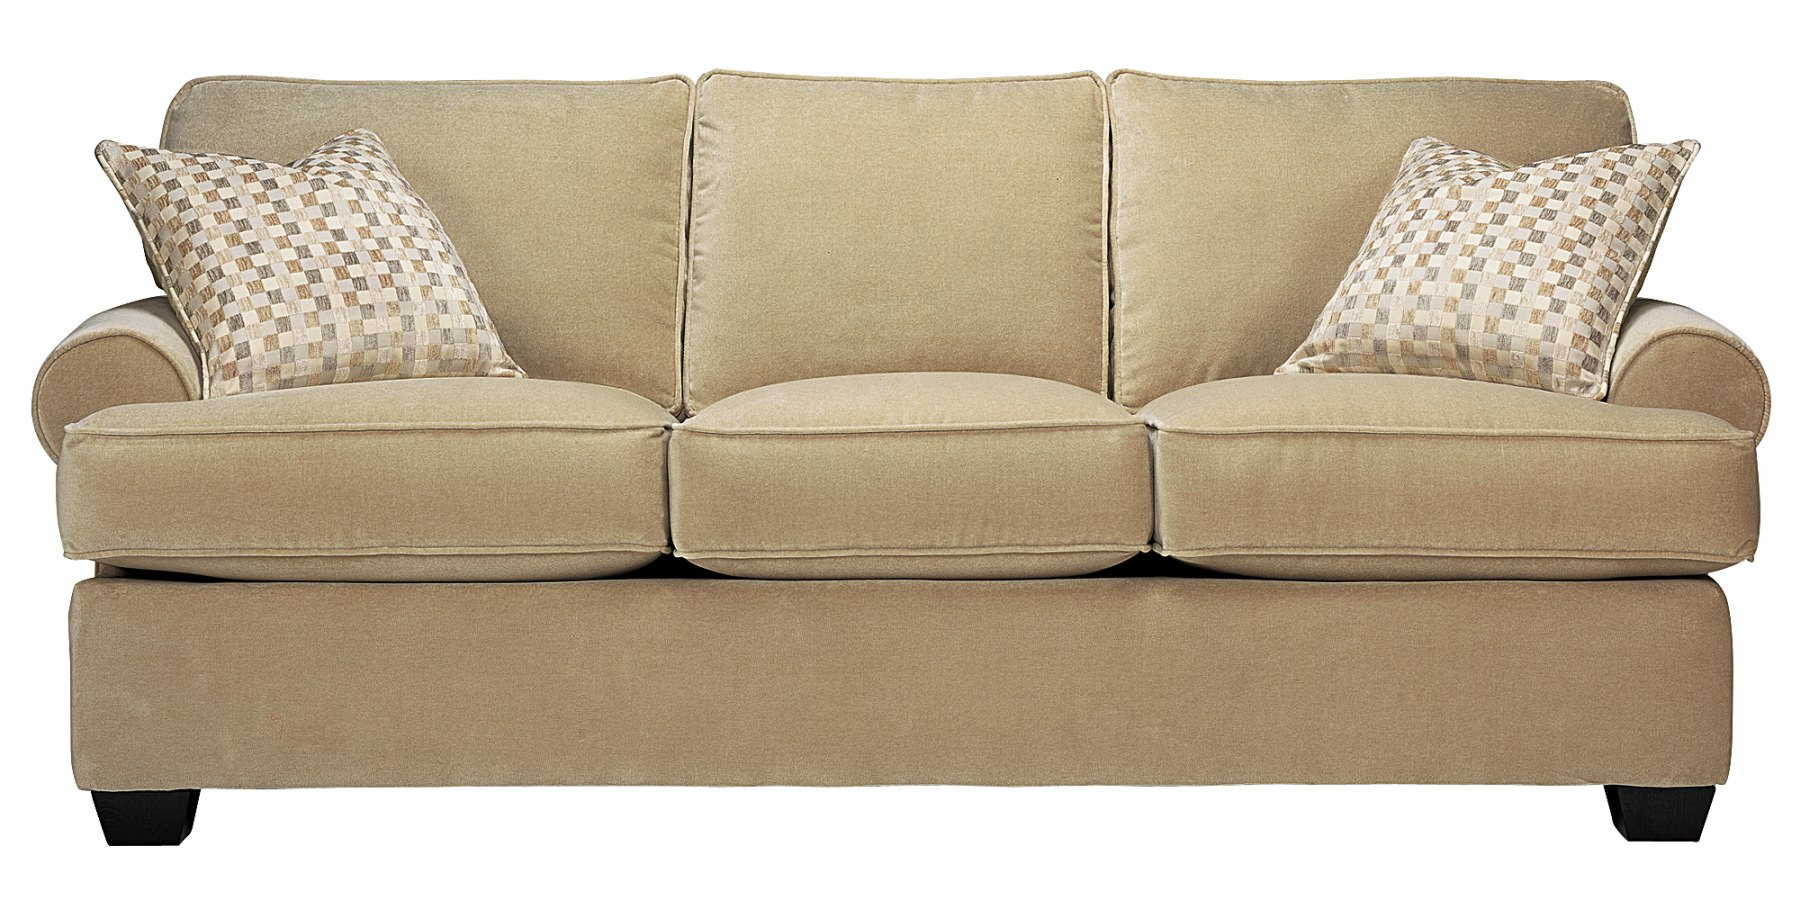 Upholstered Pillow Back Rolled Arm Sofa Collection Club Furniture